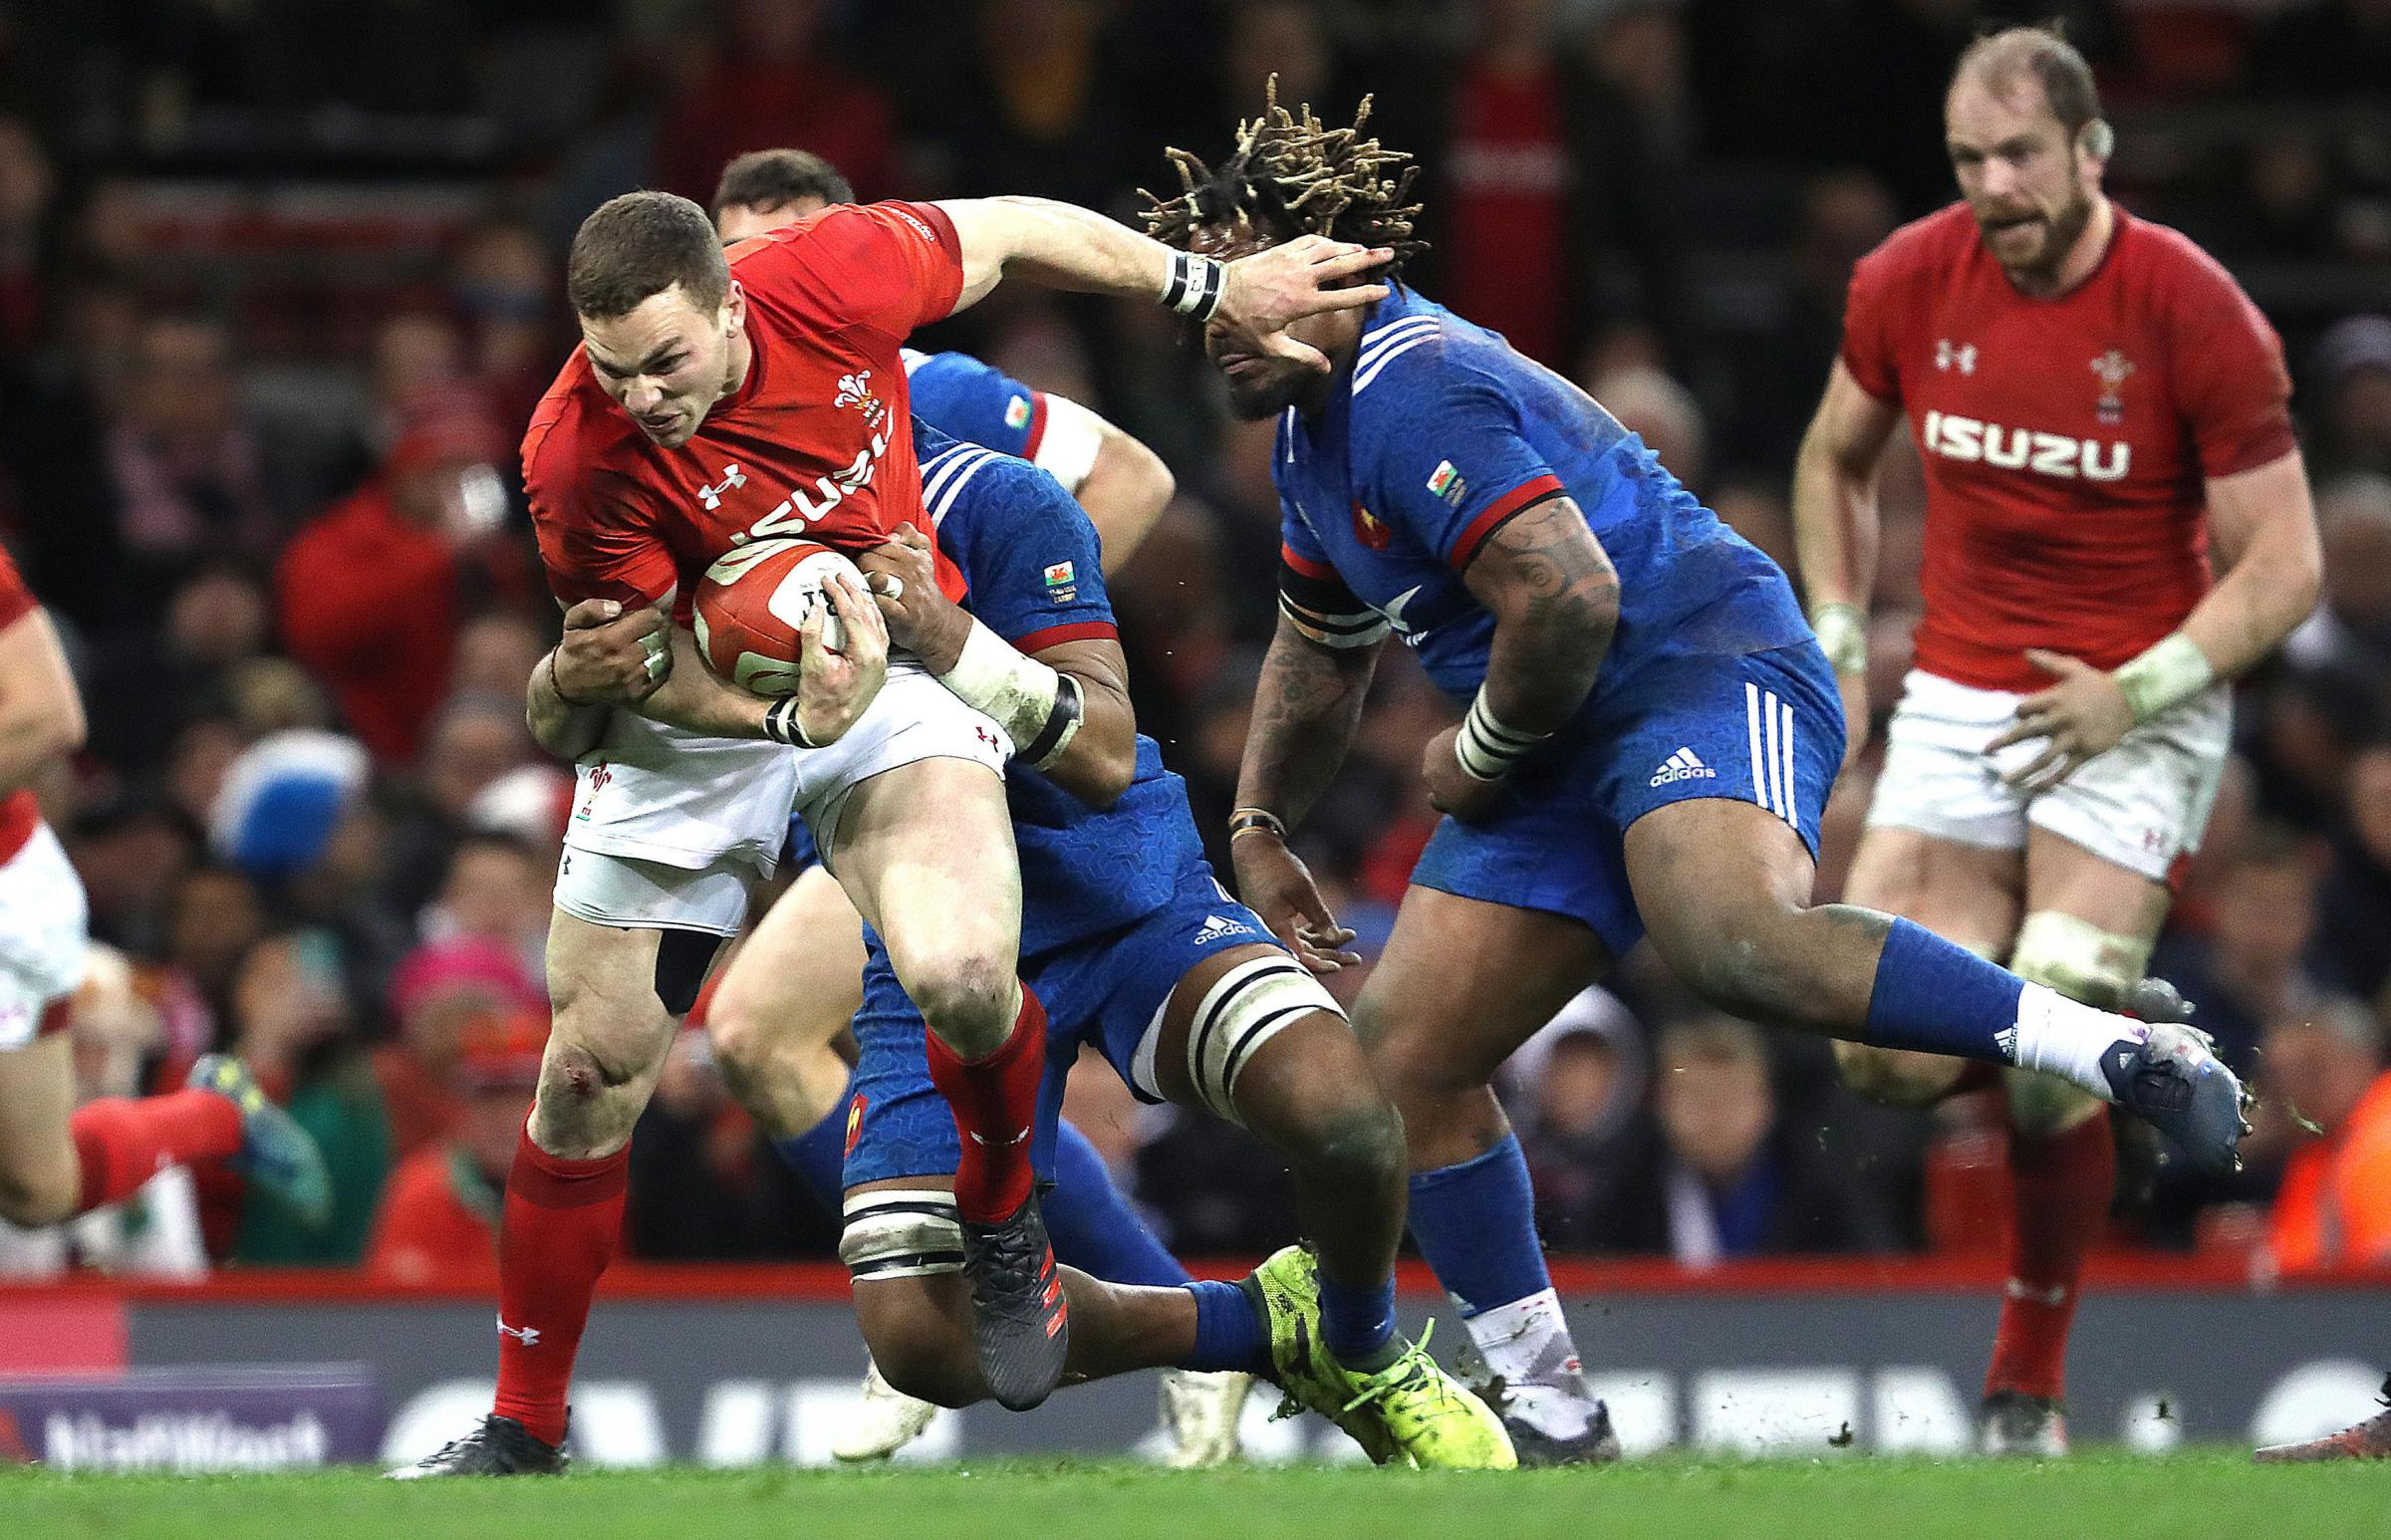 France's Mathieu Bastareaud (right) tackles Wales' George North (left) during the NatWest 6 Nations match at the Principality Stadium, Cardiff. PRESS ASSOCIATION Photo. Picture date: Saturday March 17, 2018. See PA story RUGBYU Wales